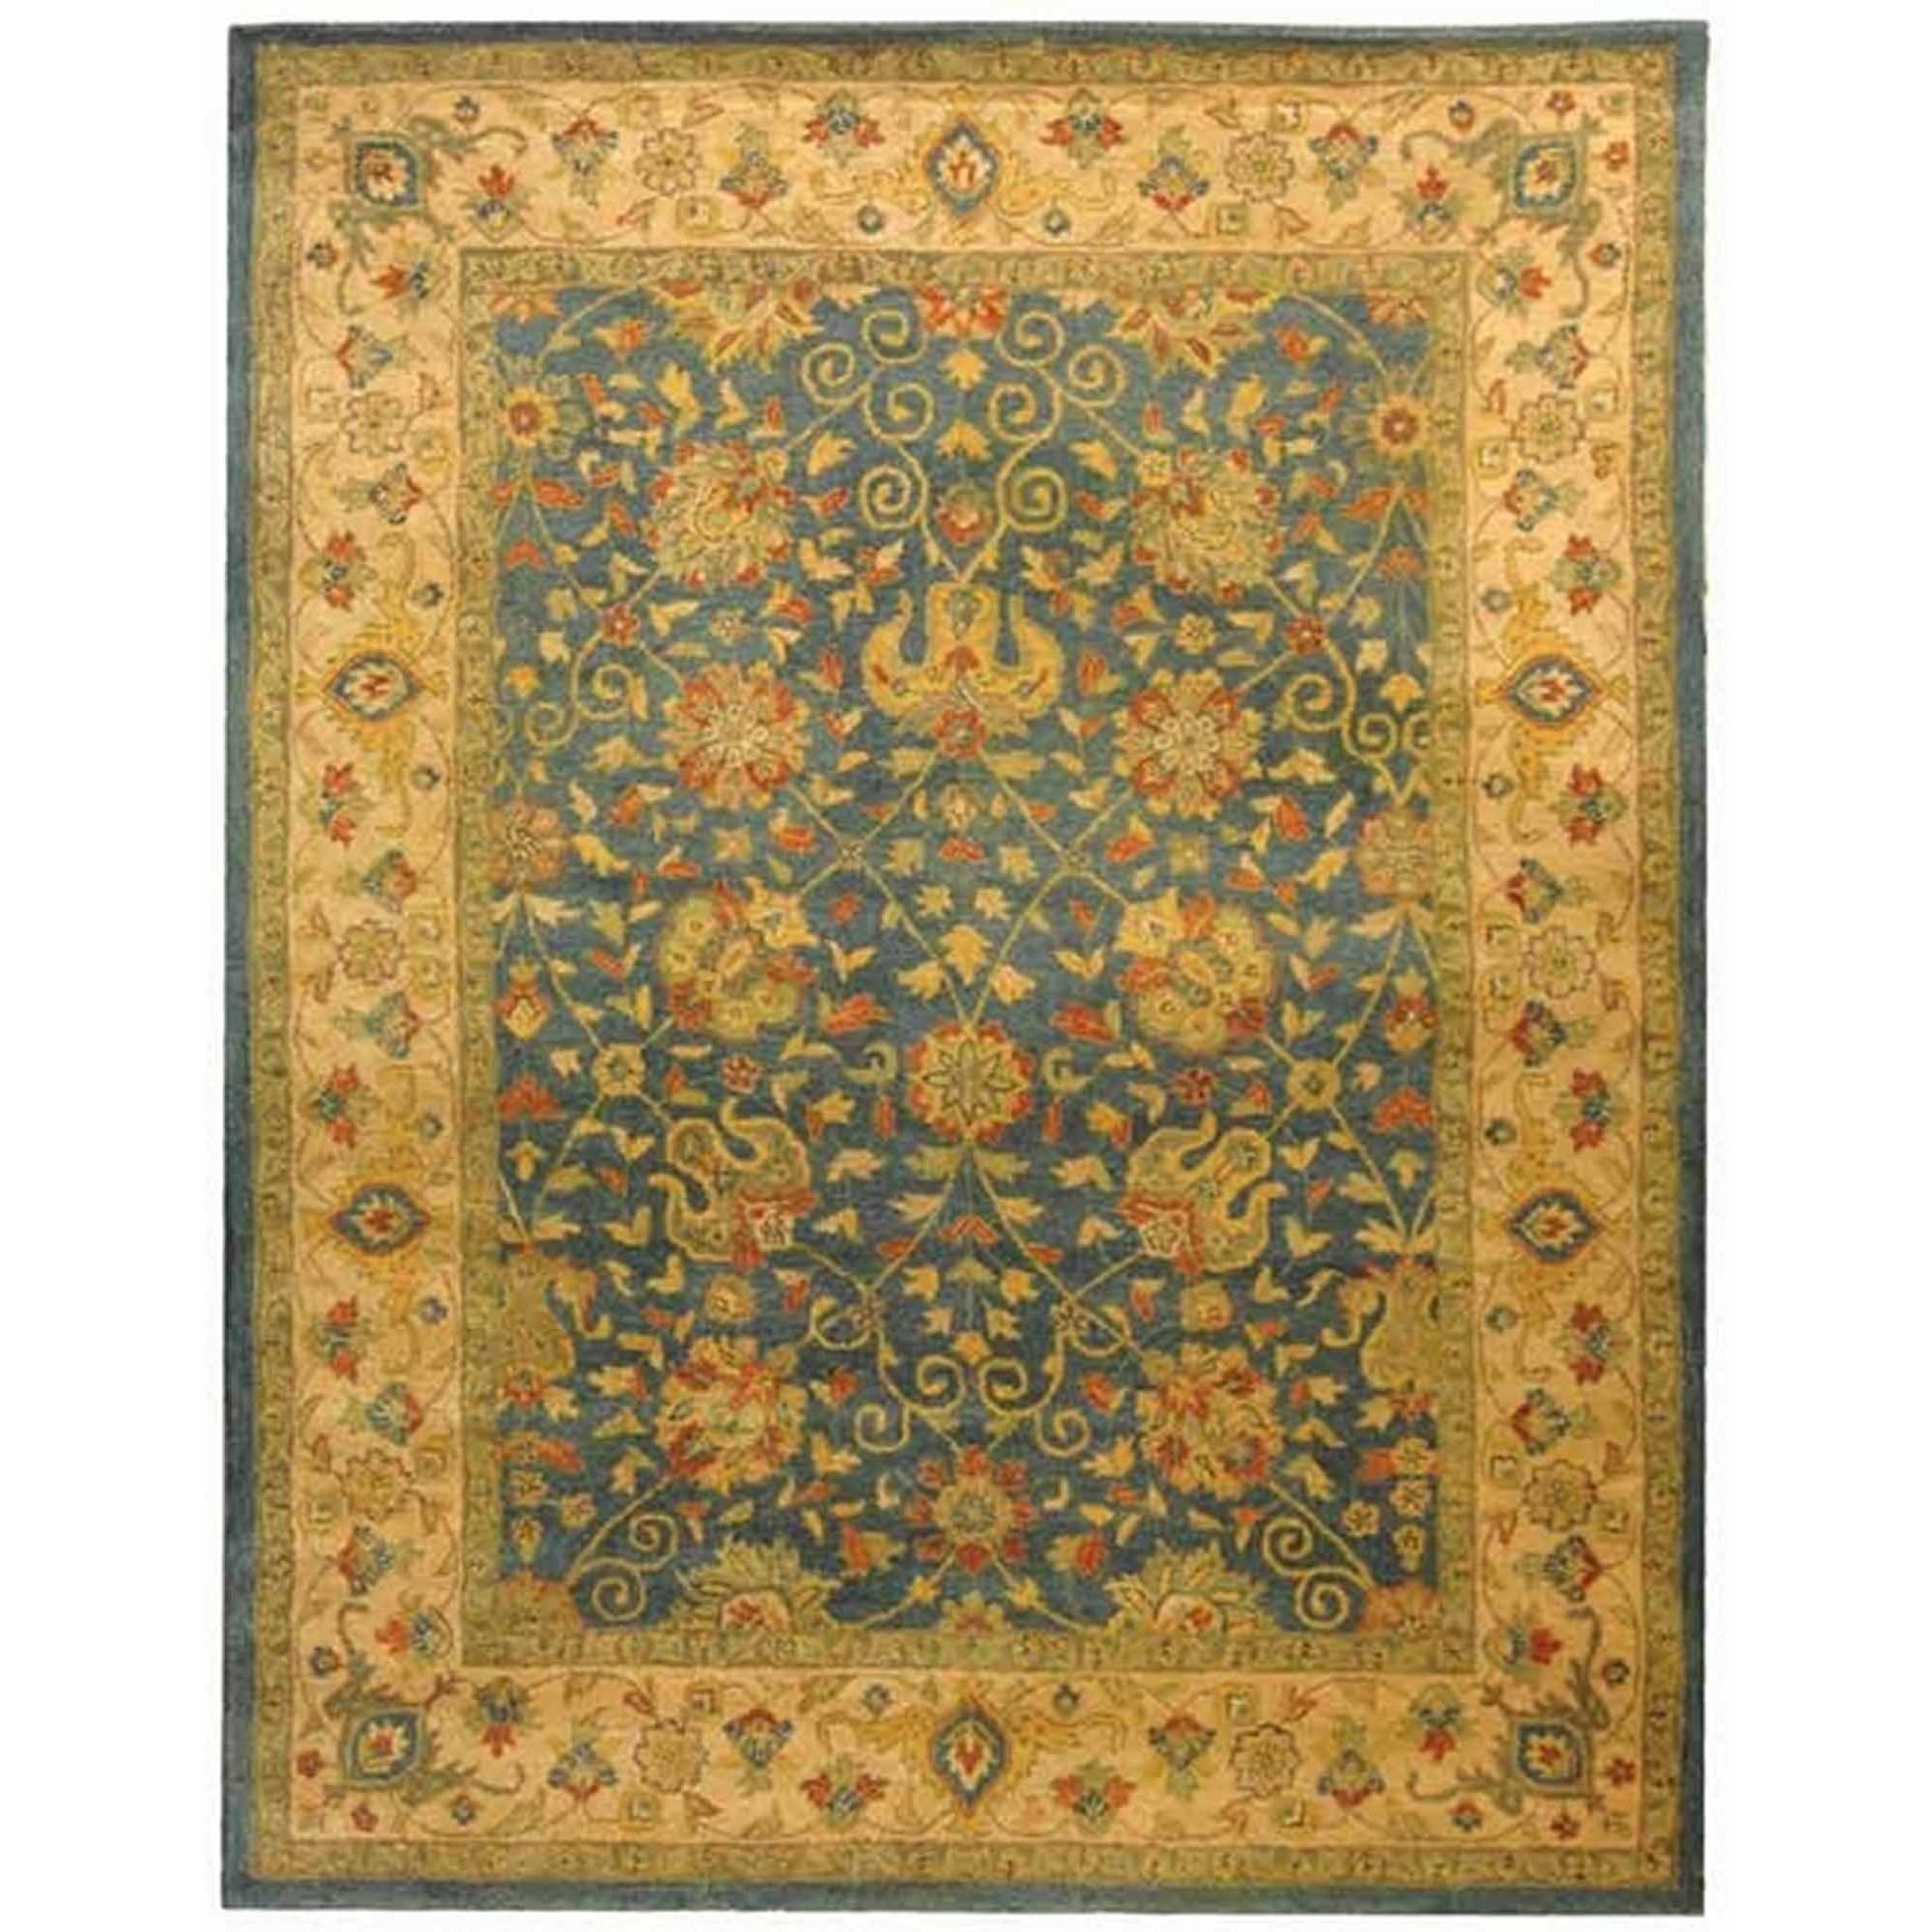 Safavieh Antiquity Ryan Hand-Tufted Wool Area Rug